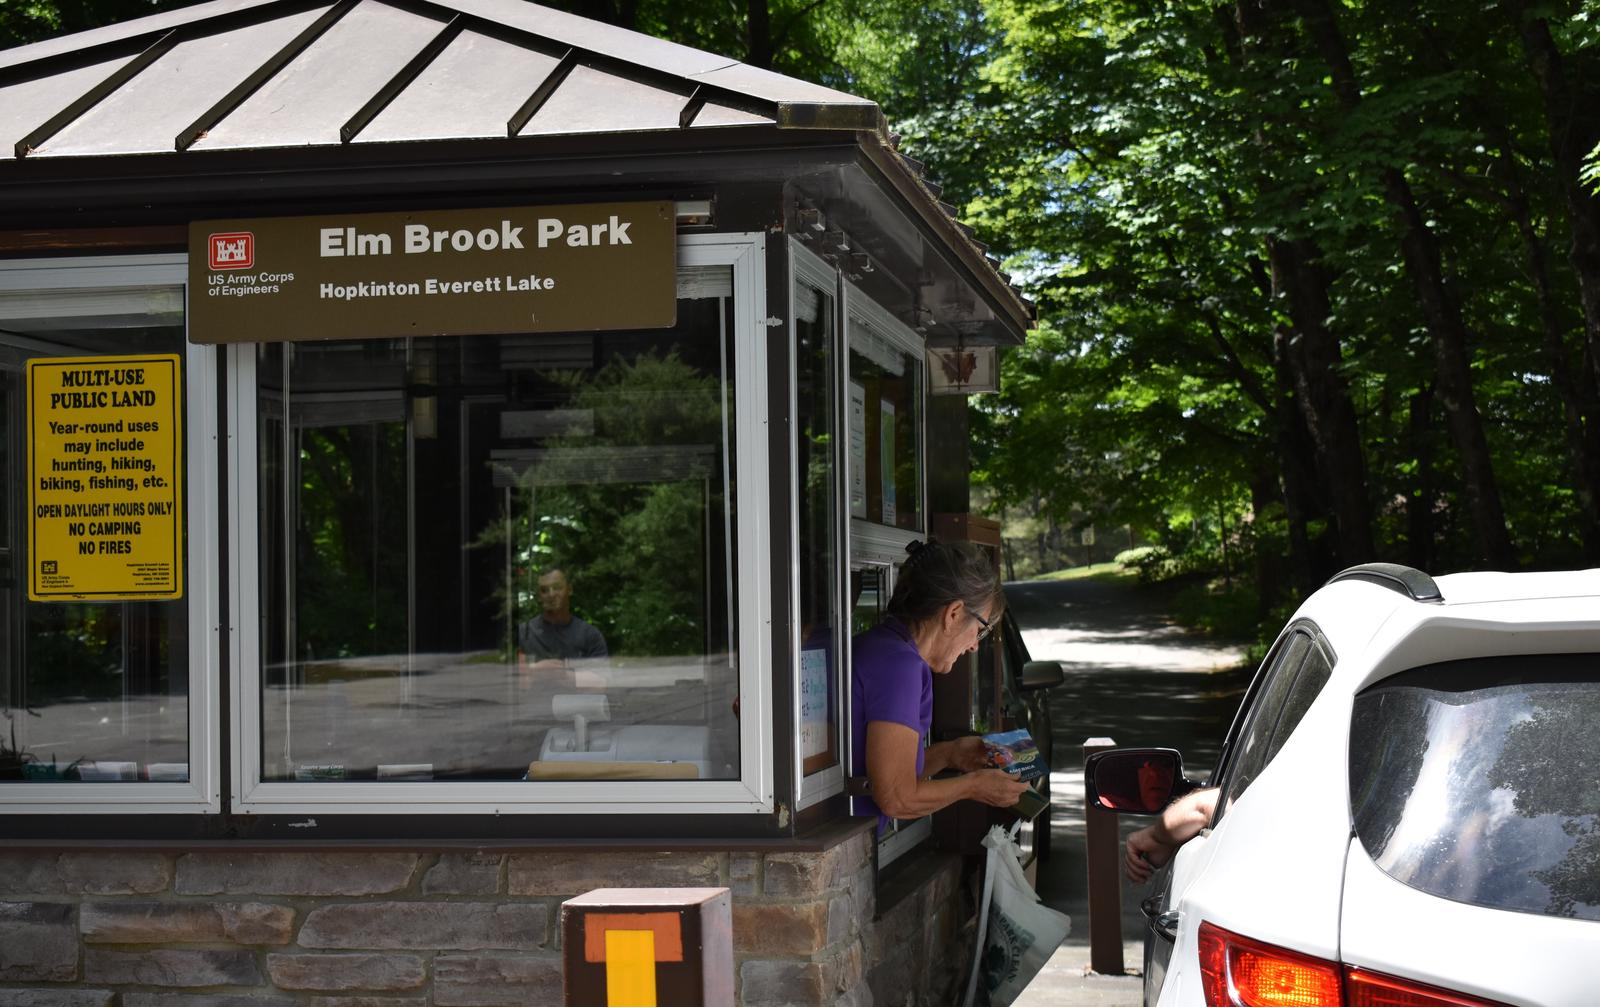 A Park Host greeting a visitor in their vehicle at the Elm Brook Park Entrance Booth.Entrance Booth